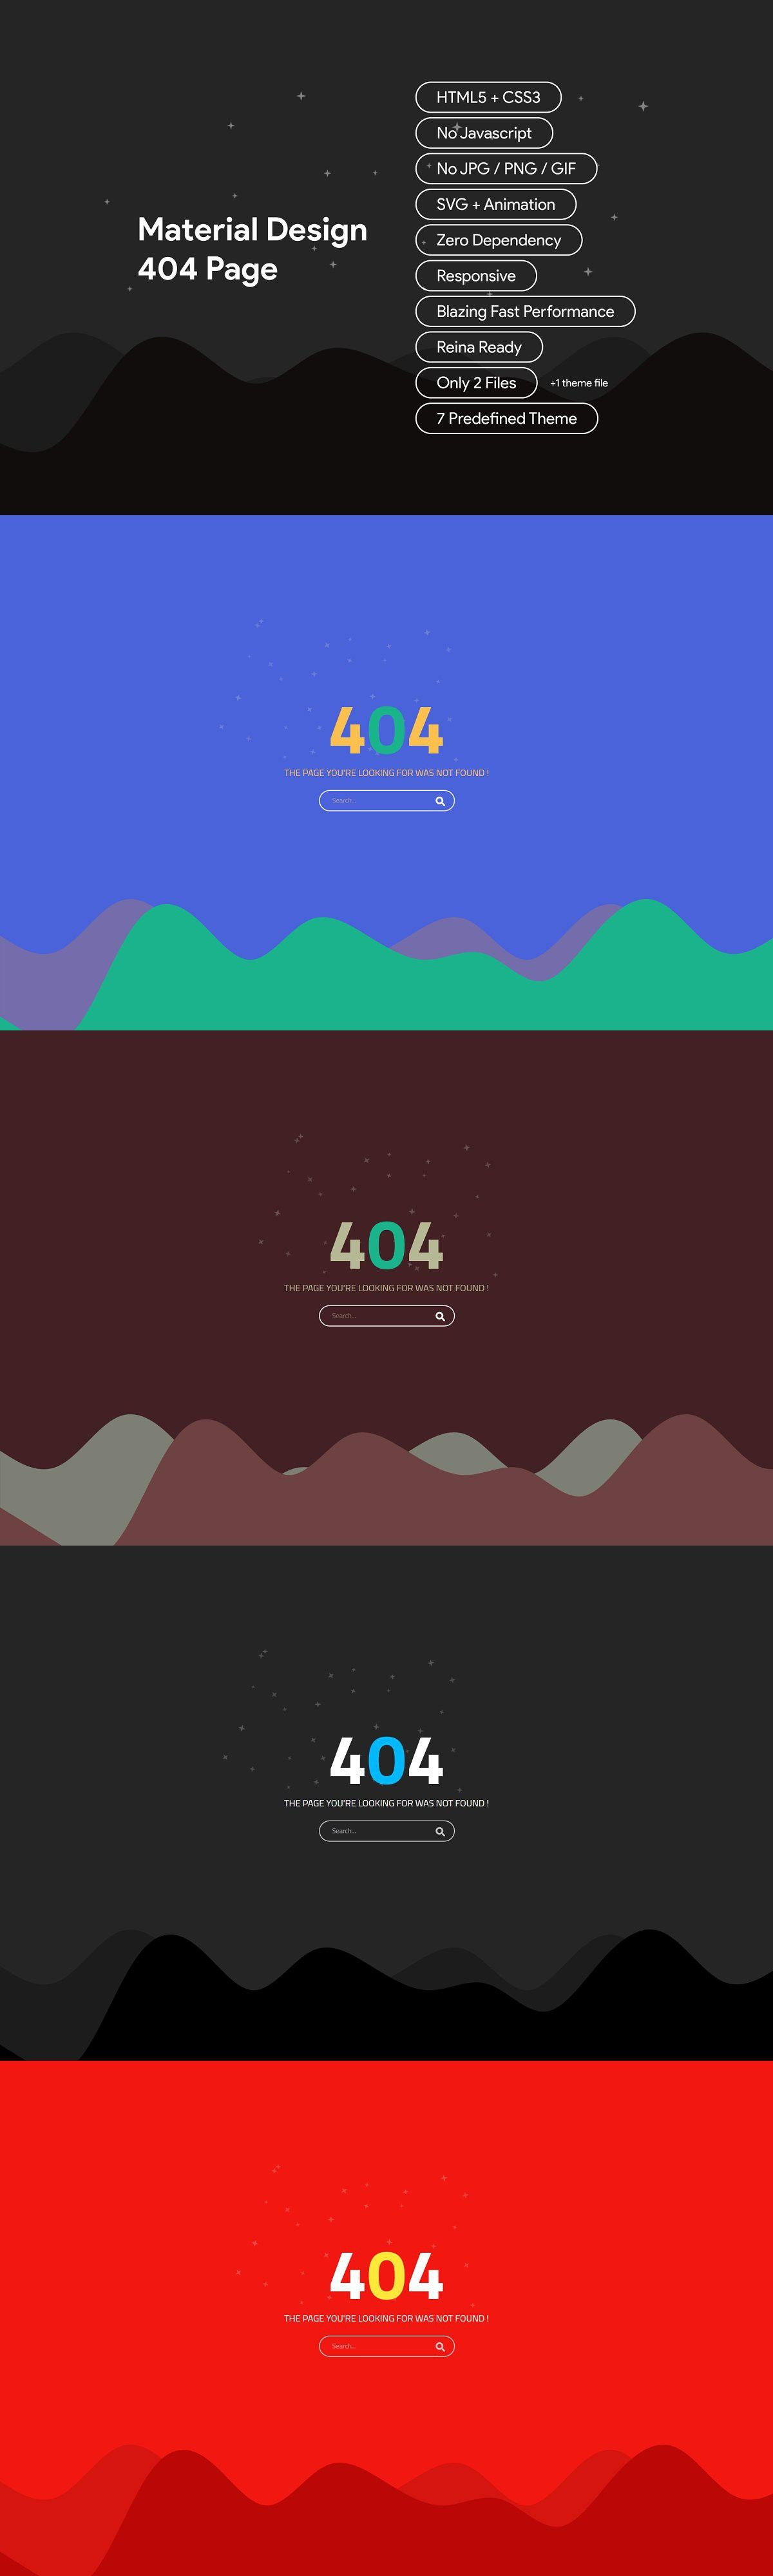 Pin on HTML/CSS Themes